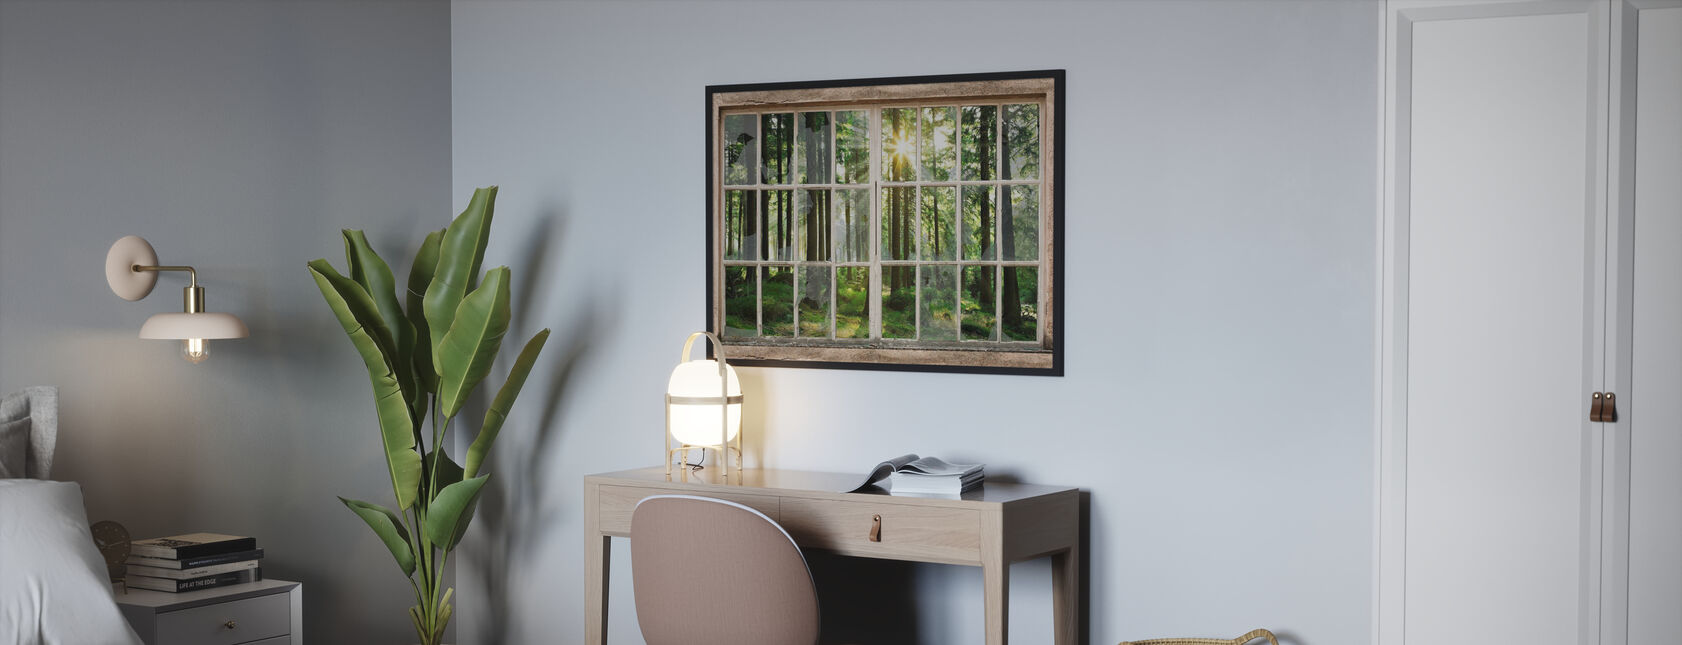 Sunset in Forest Through Broken Window - Poster - Bedroom